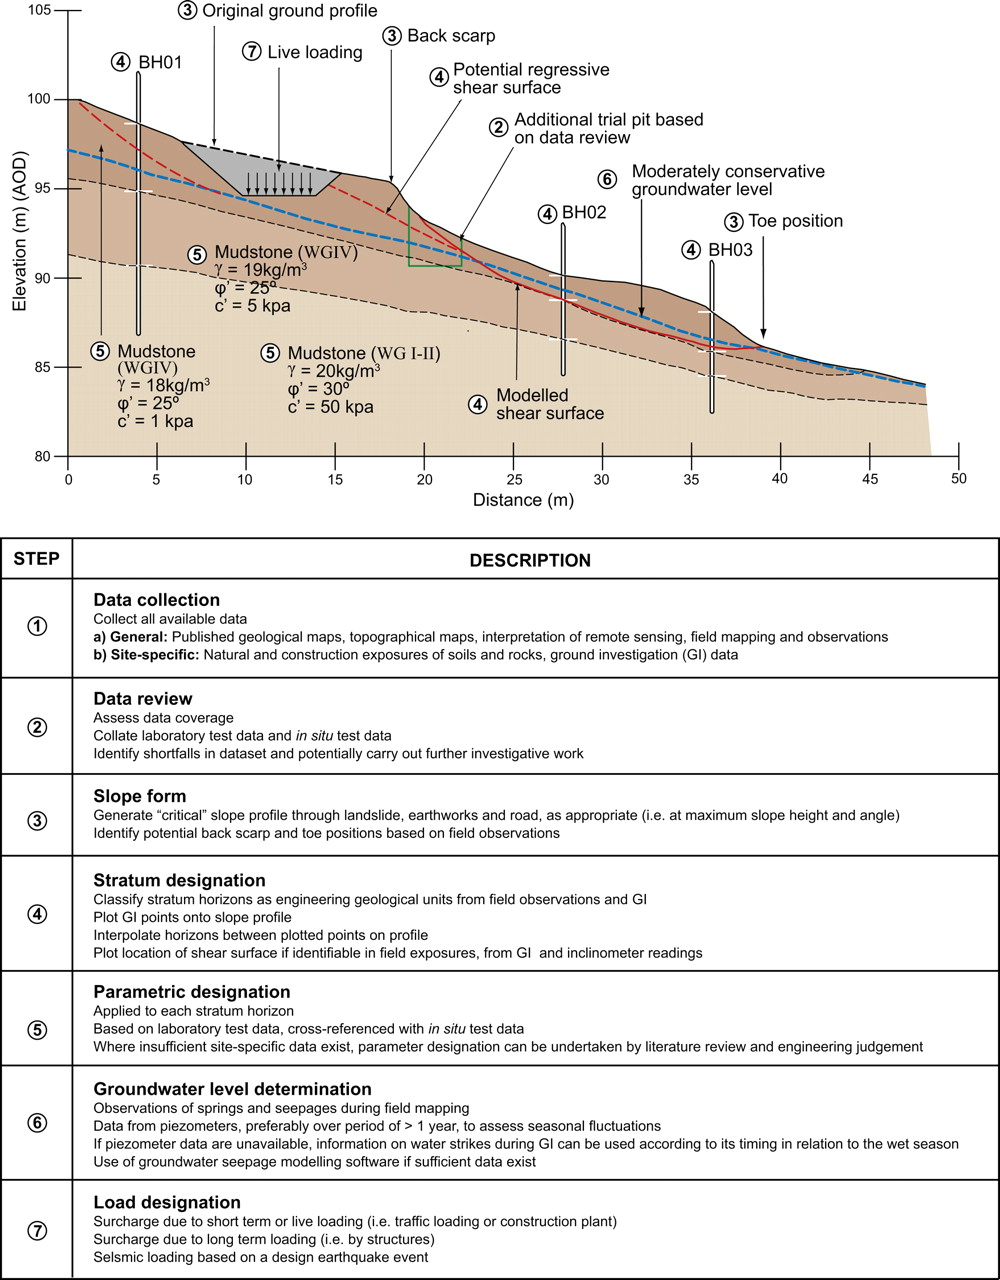 C3 Soil slope stabilization | Geological Society, London